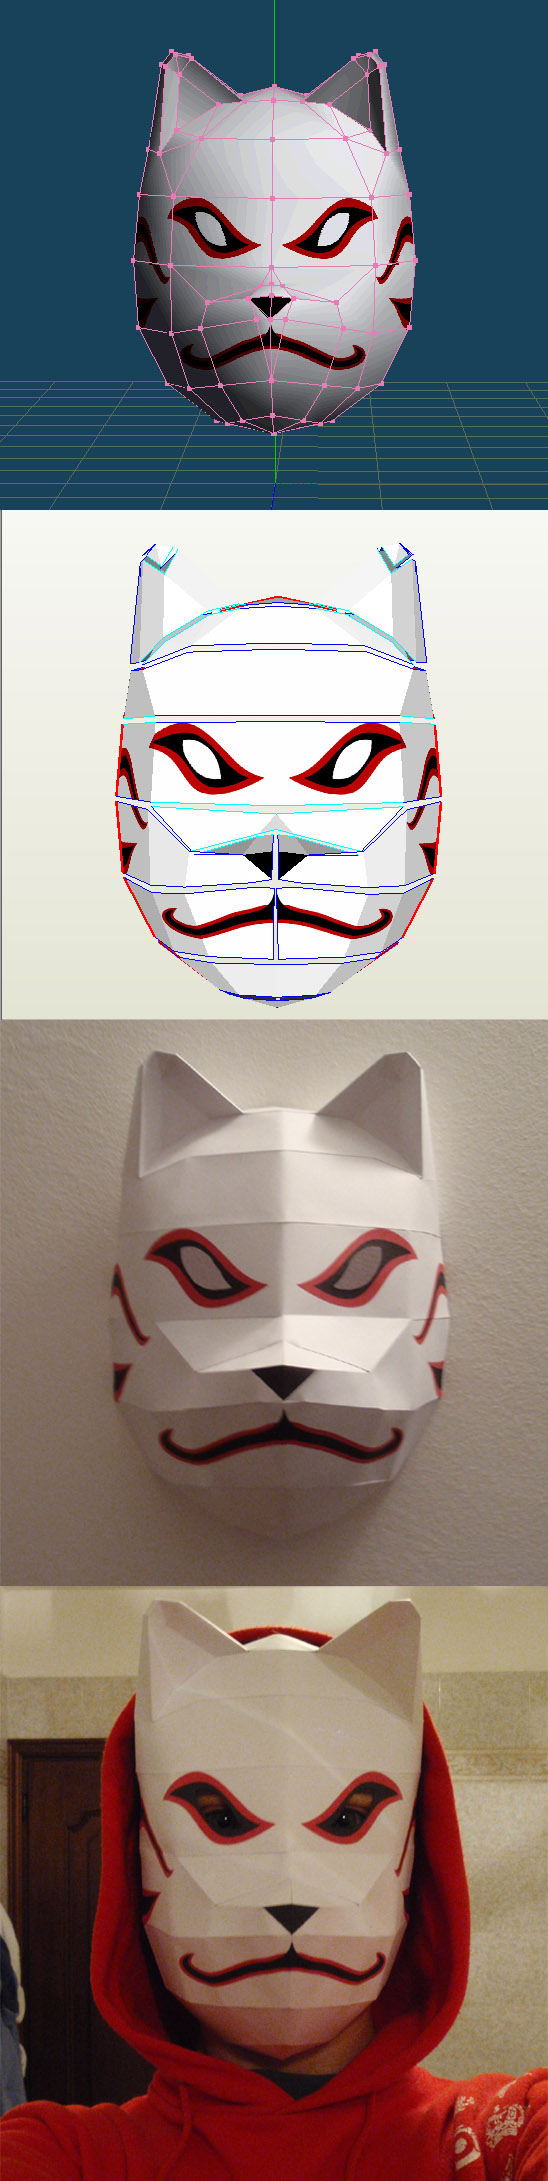 Kakashi Mask Buy Kakashi 39 s Anbu Mask Anime